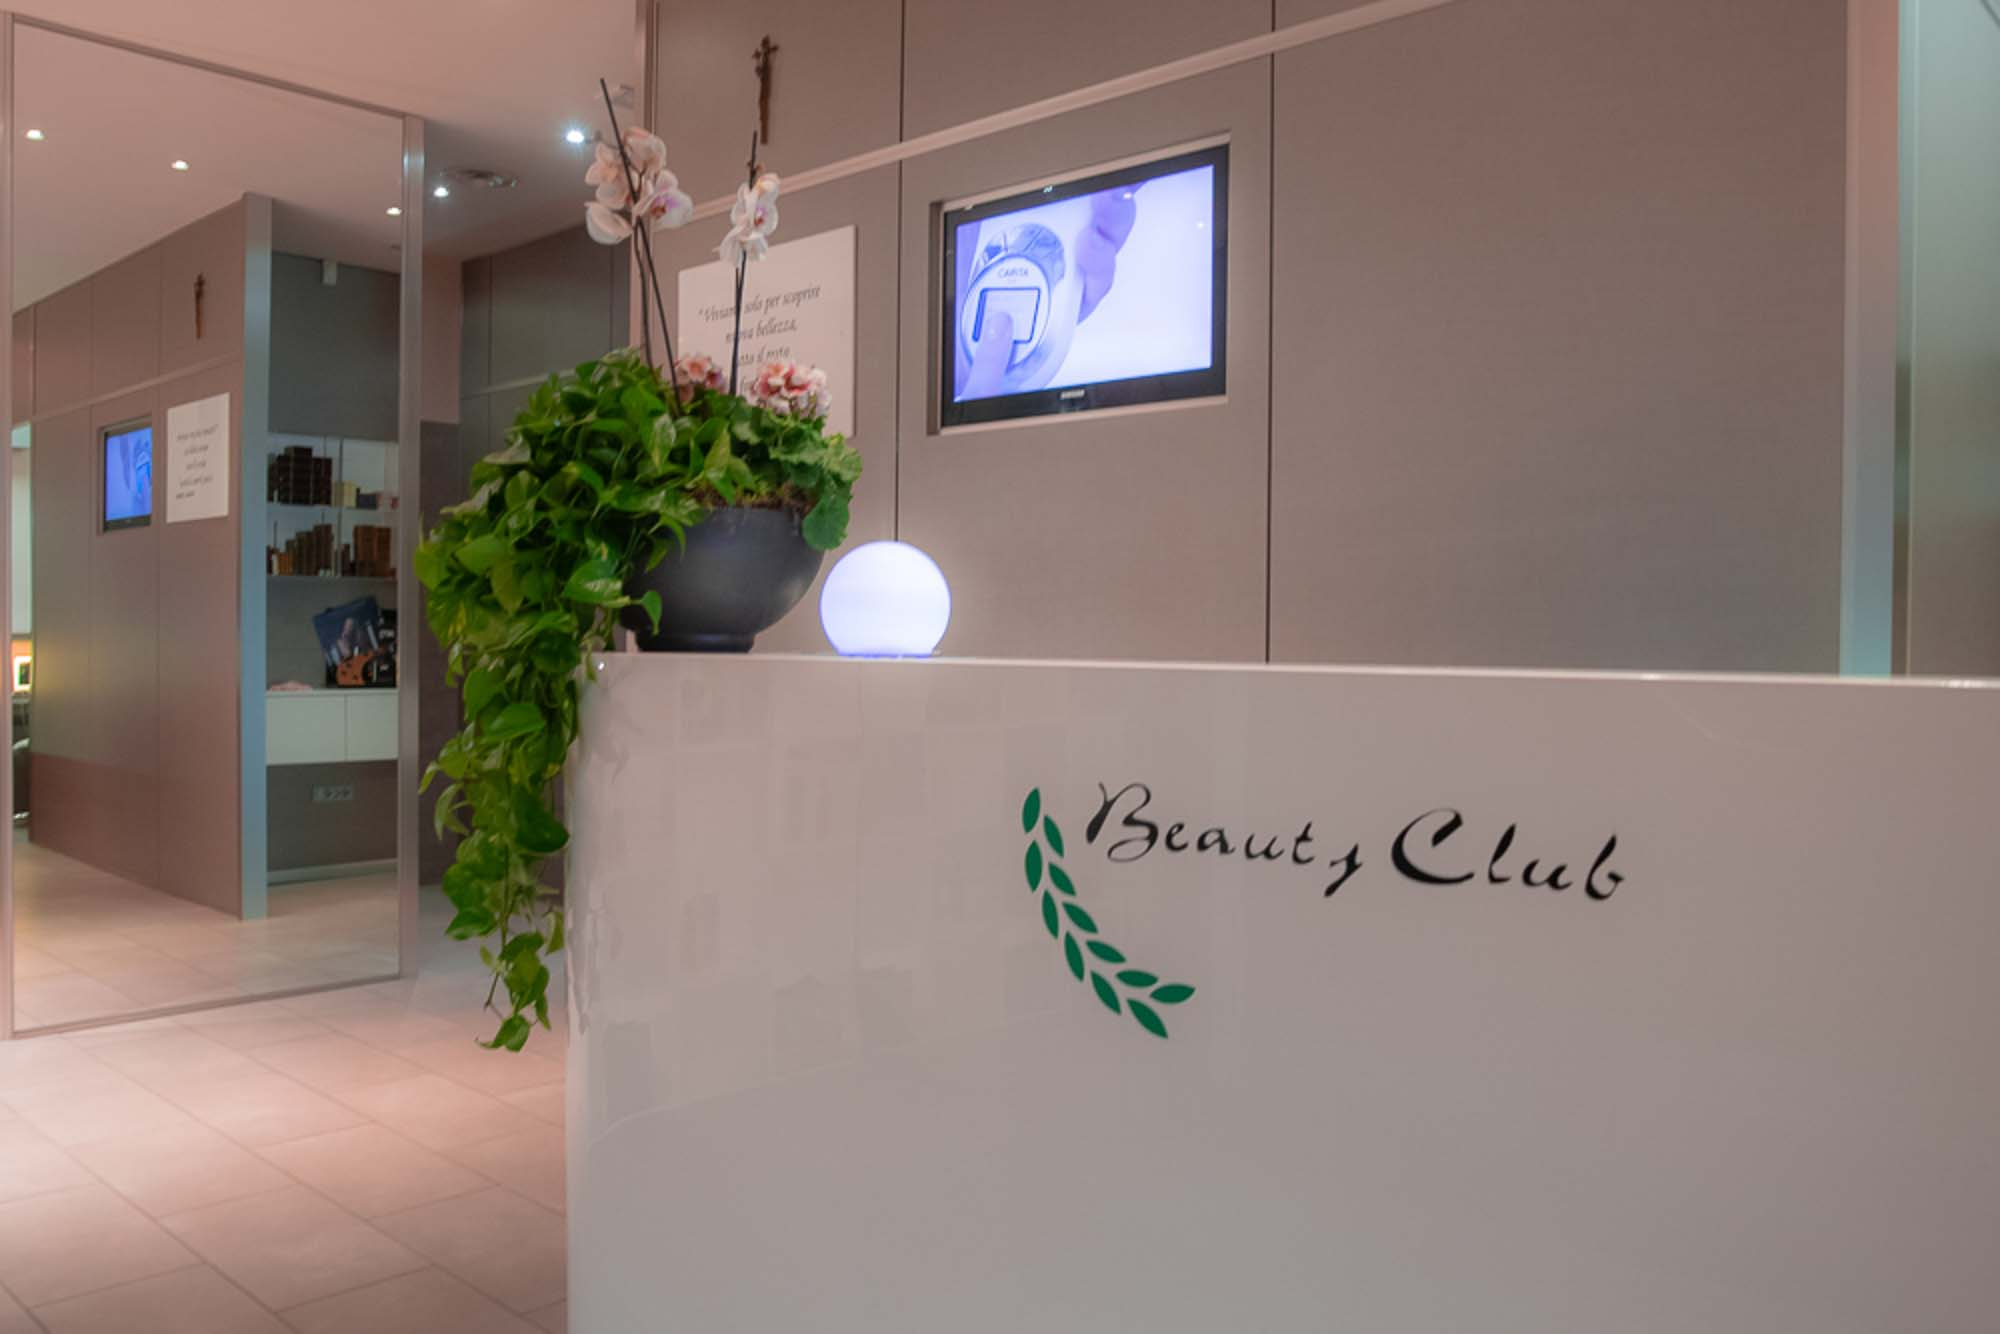 Estetica Beauty Club Receptions